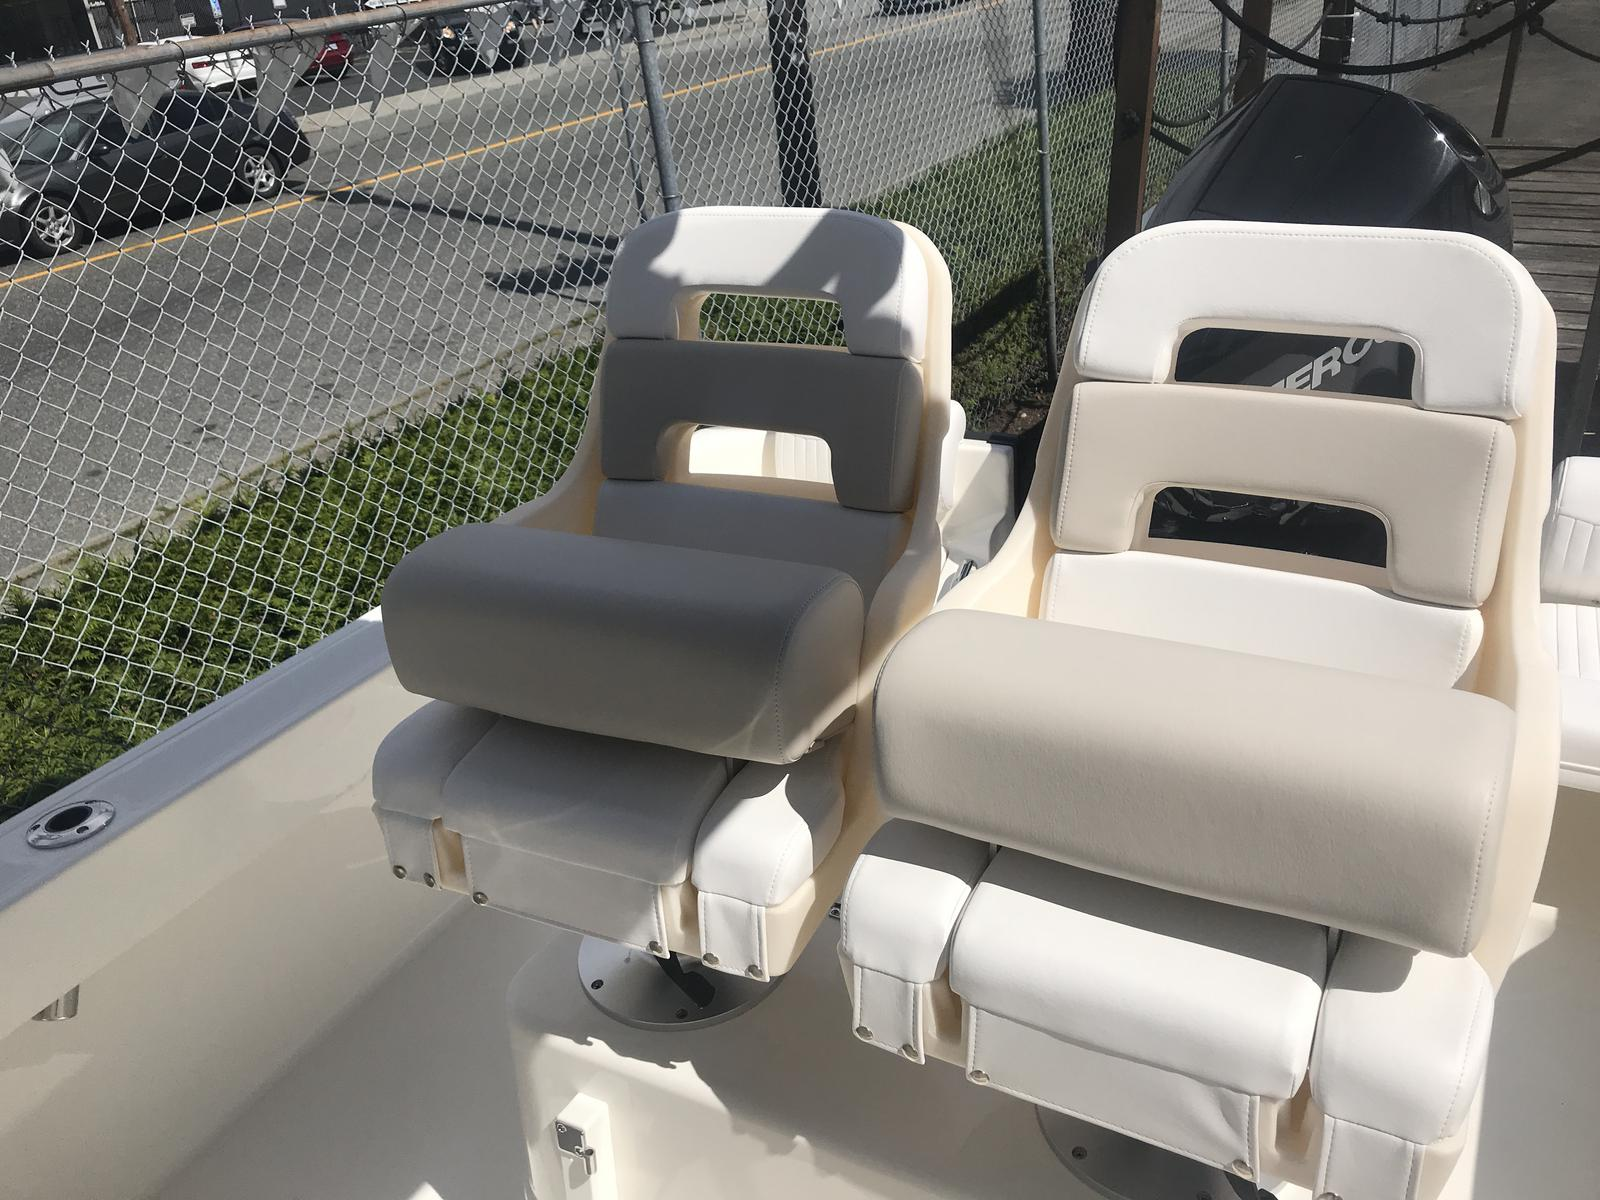 2019 Boston Whaler boat for sale, model of the boat is 190 Outrage & Image # 3 of 12